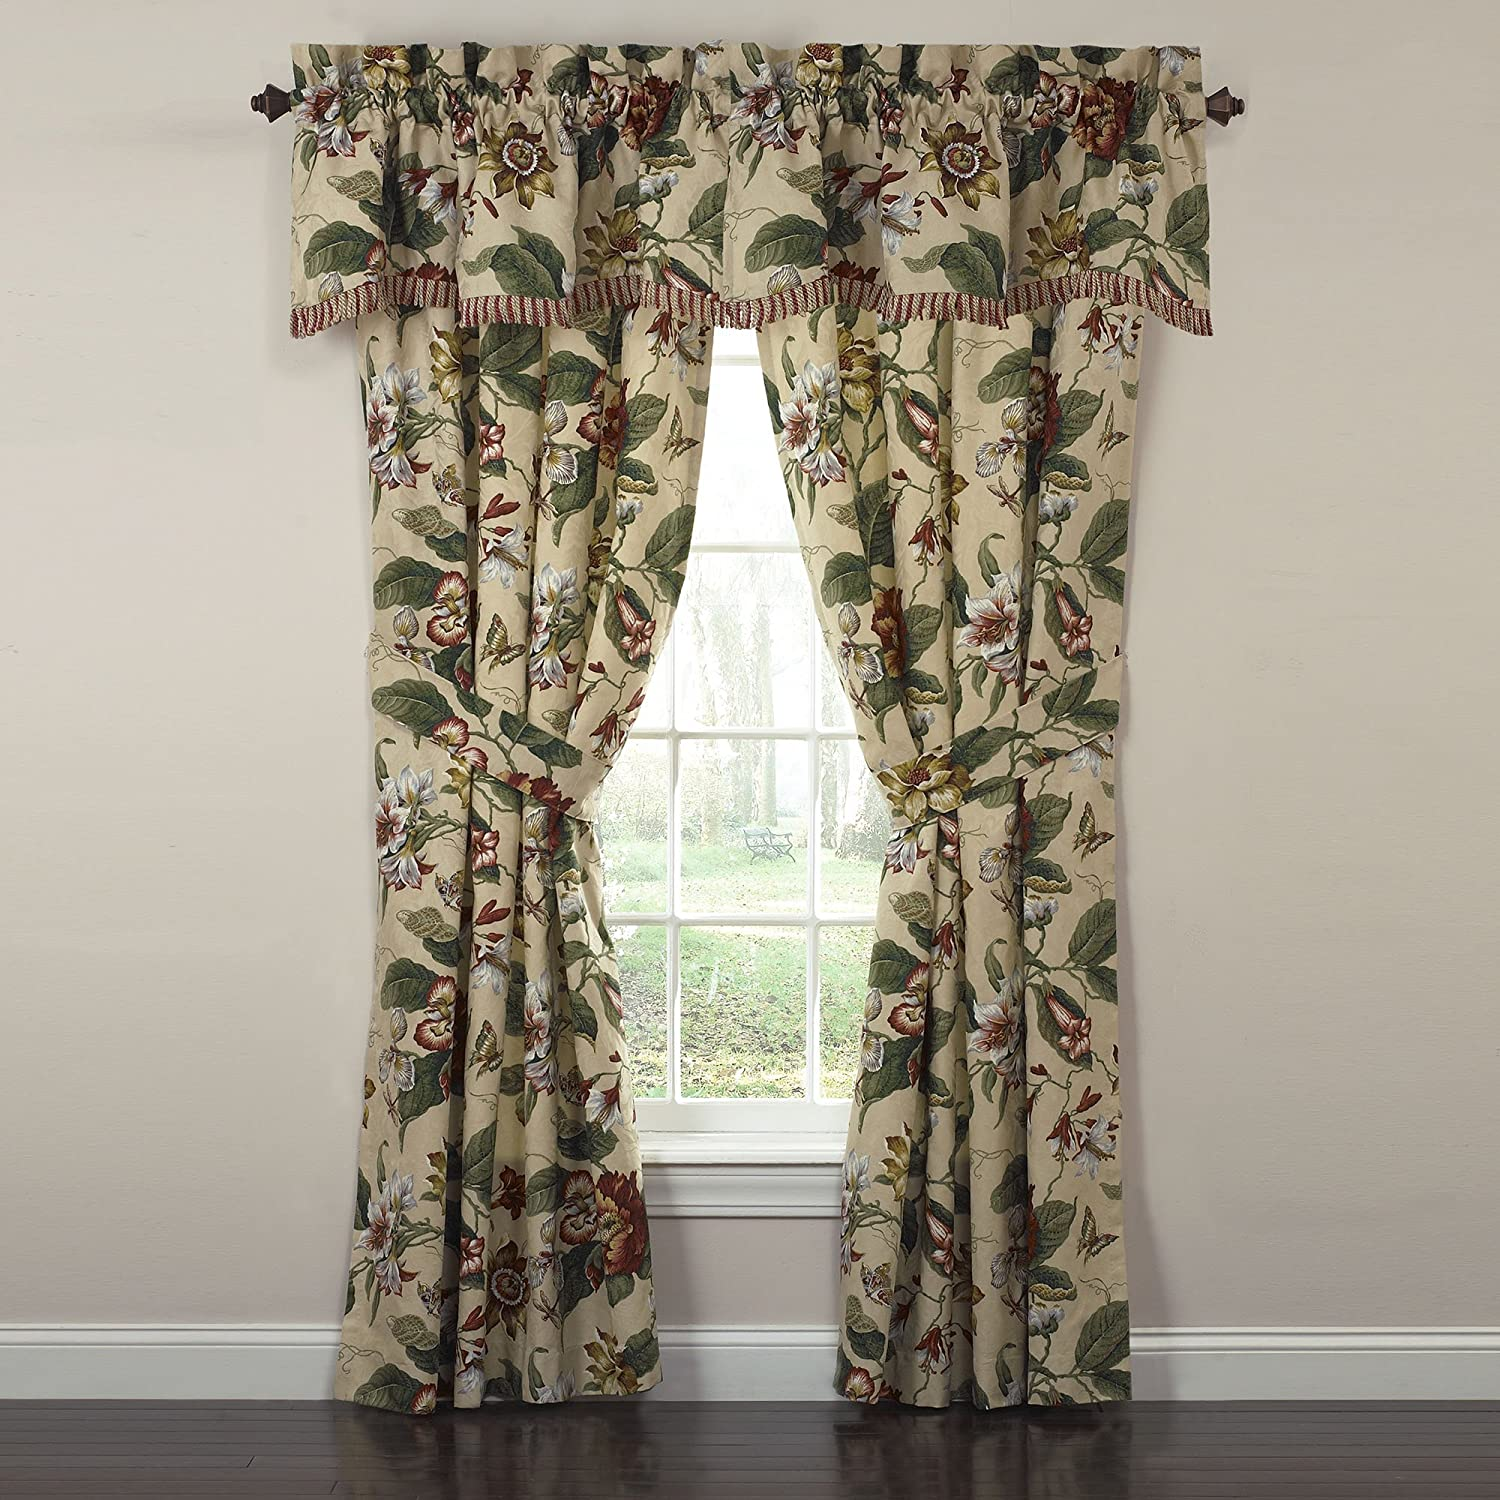 larkspur walmart scalloped valance valances waverly com ip charleston chirp